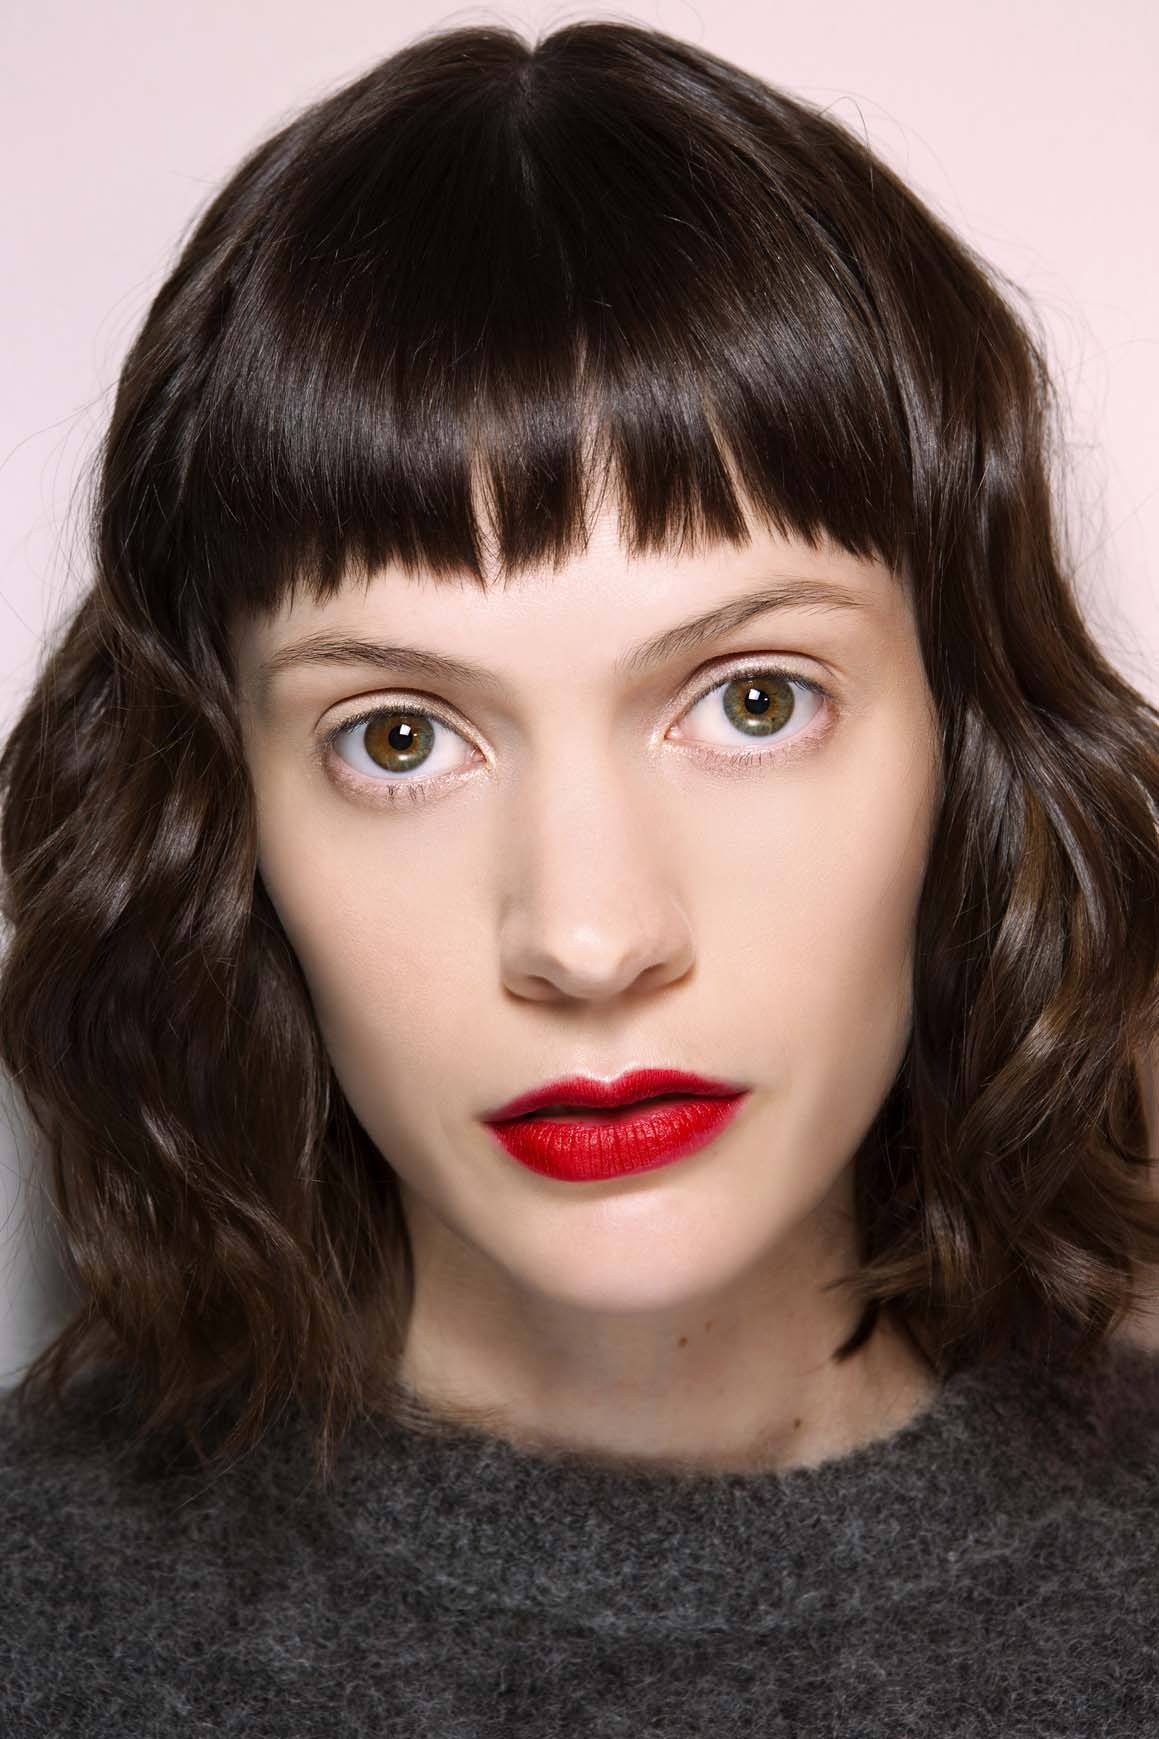 5 Cool Ways To Wear Short Bangs Plus Need To Know